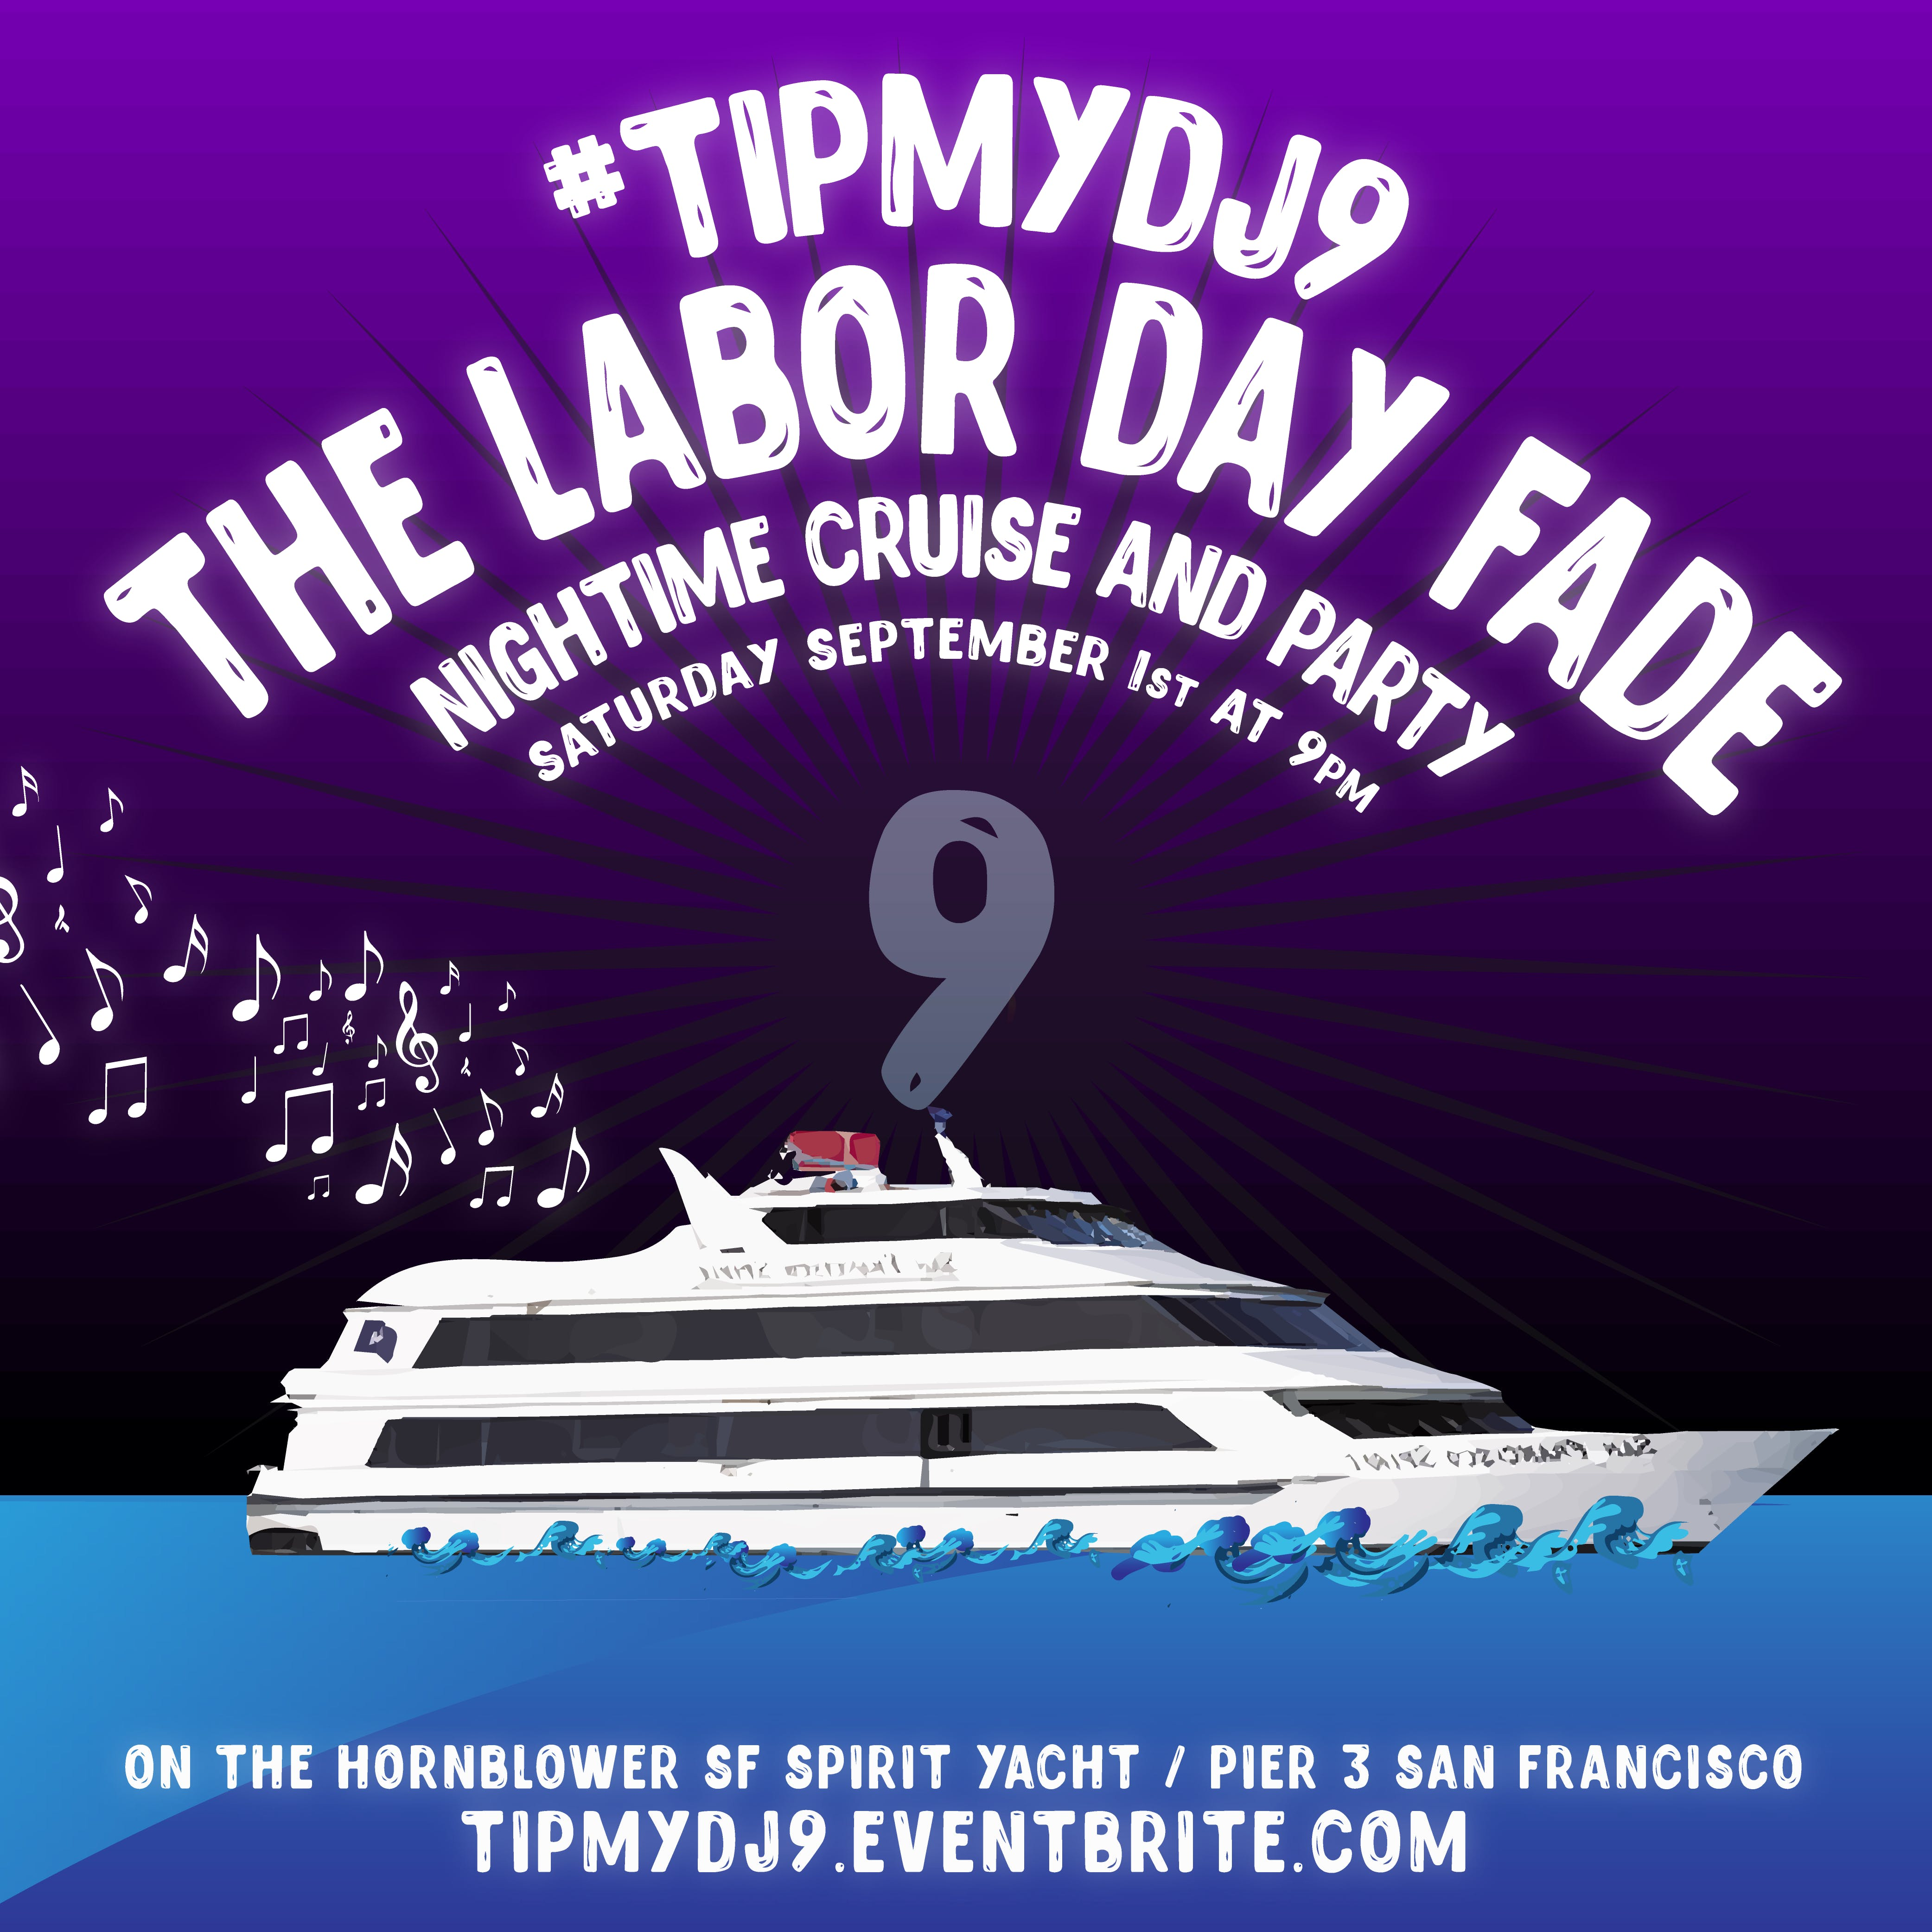 #tipmydj9 Labor Day Weekend Yacht Party